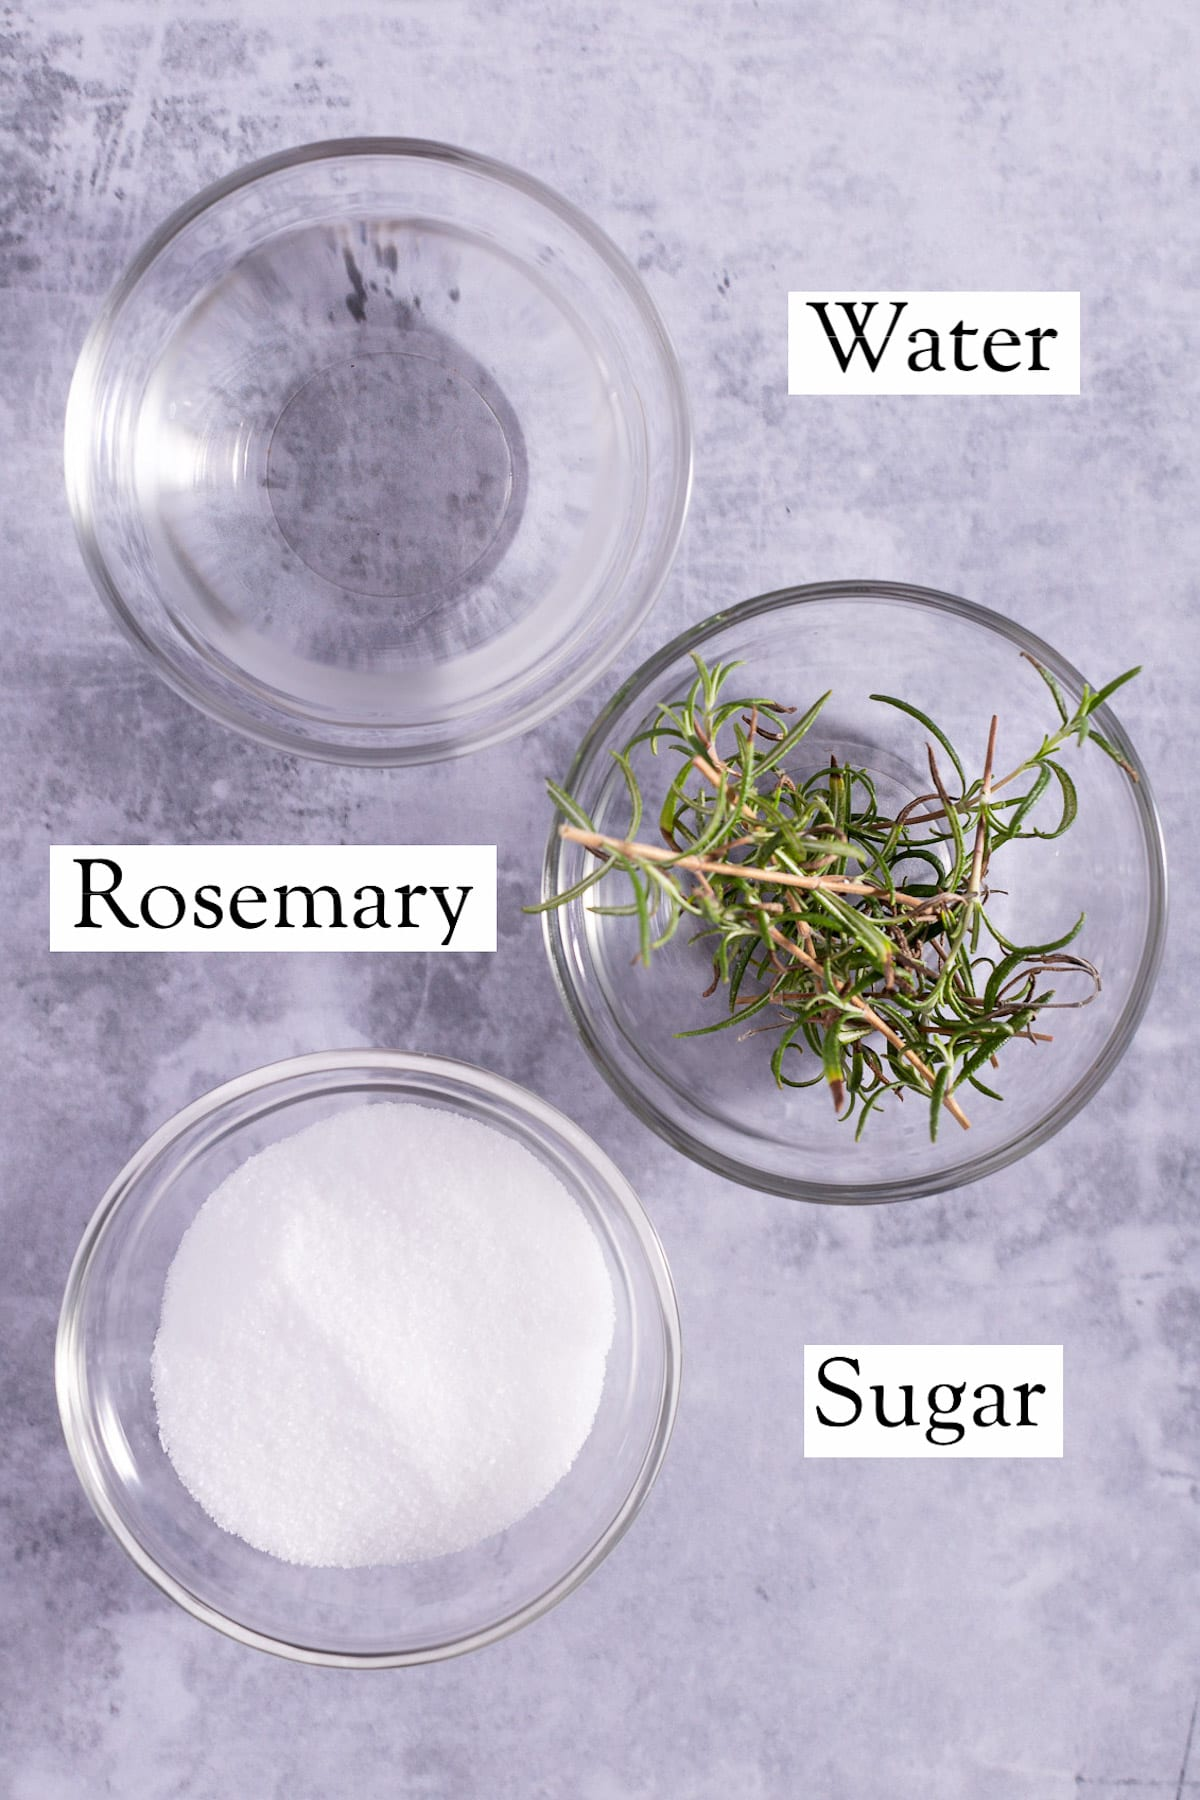 Overhead view of the ingredients needed to make the syrup.